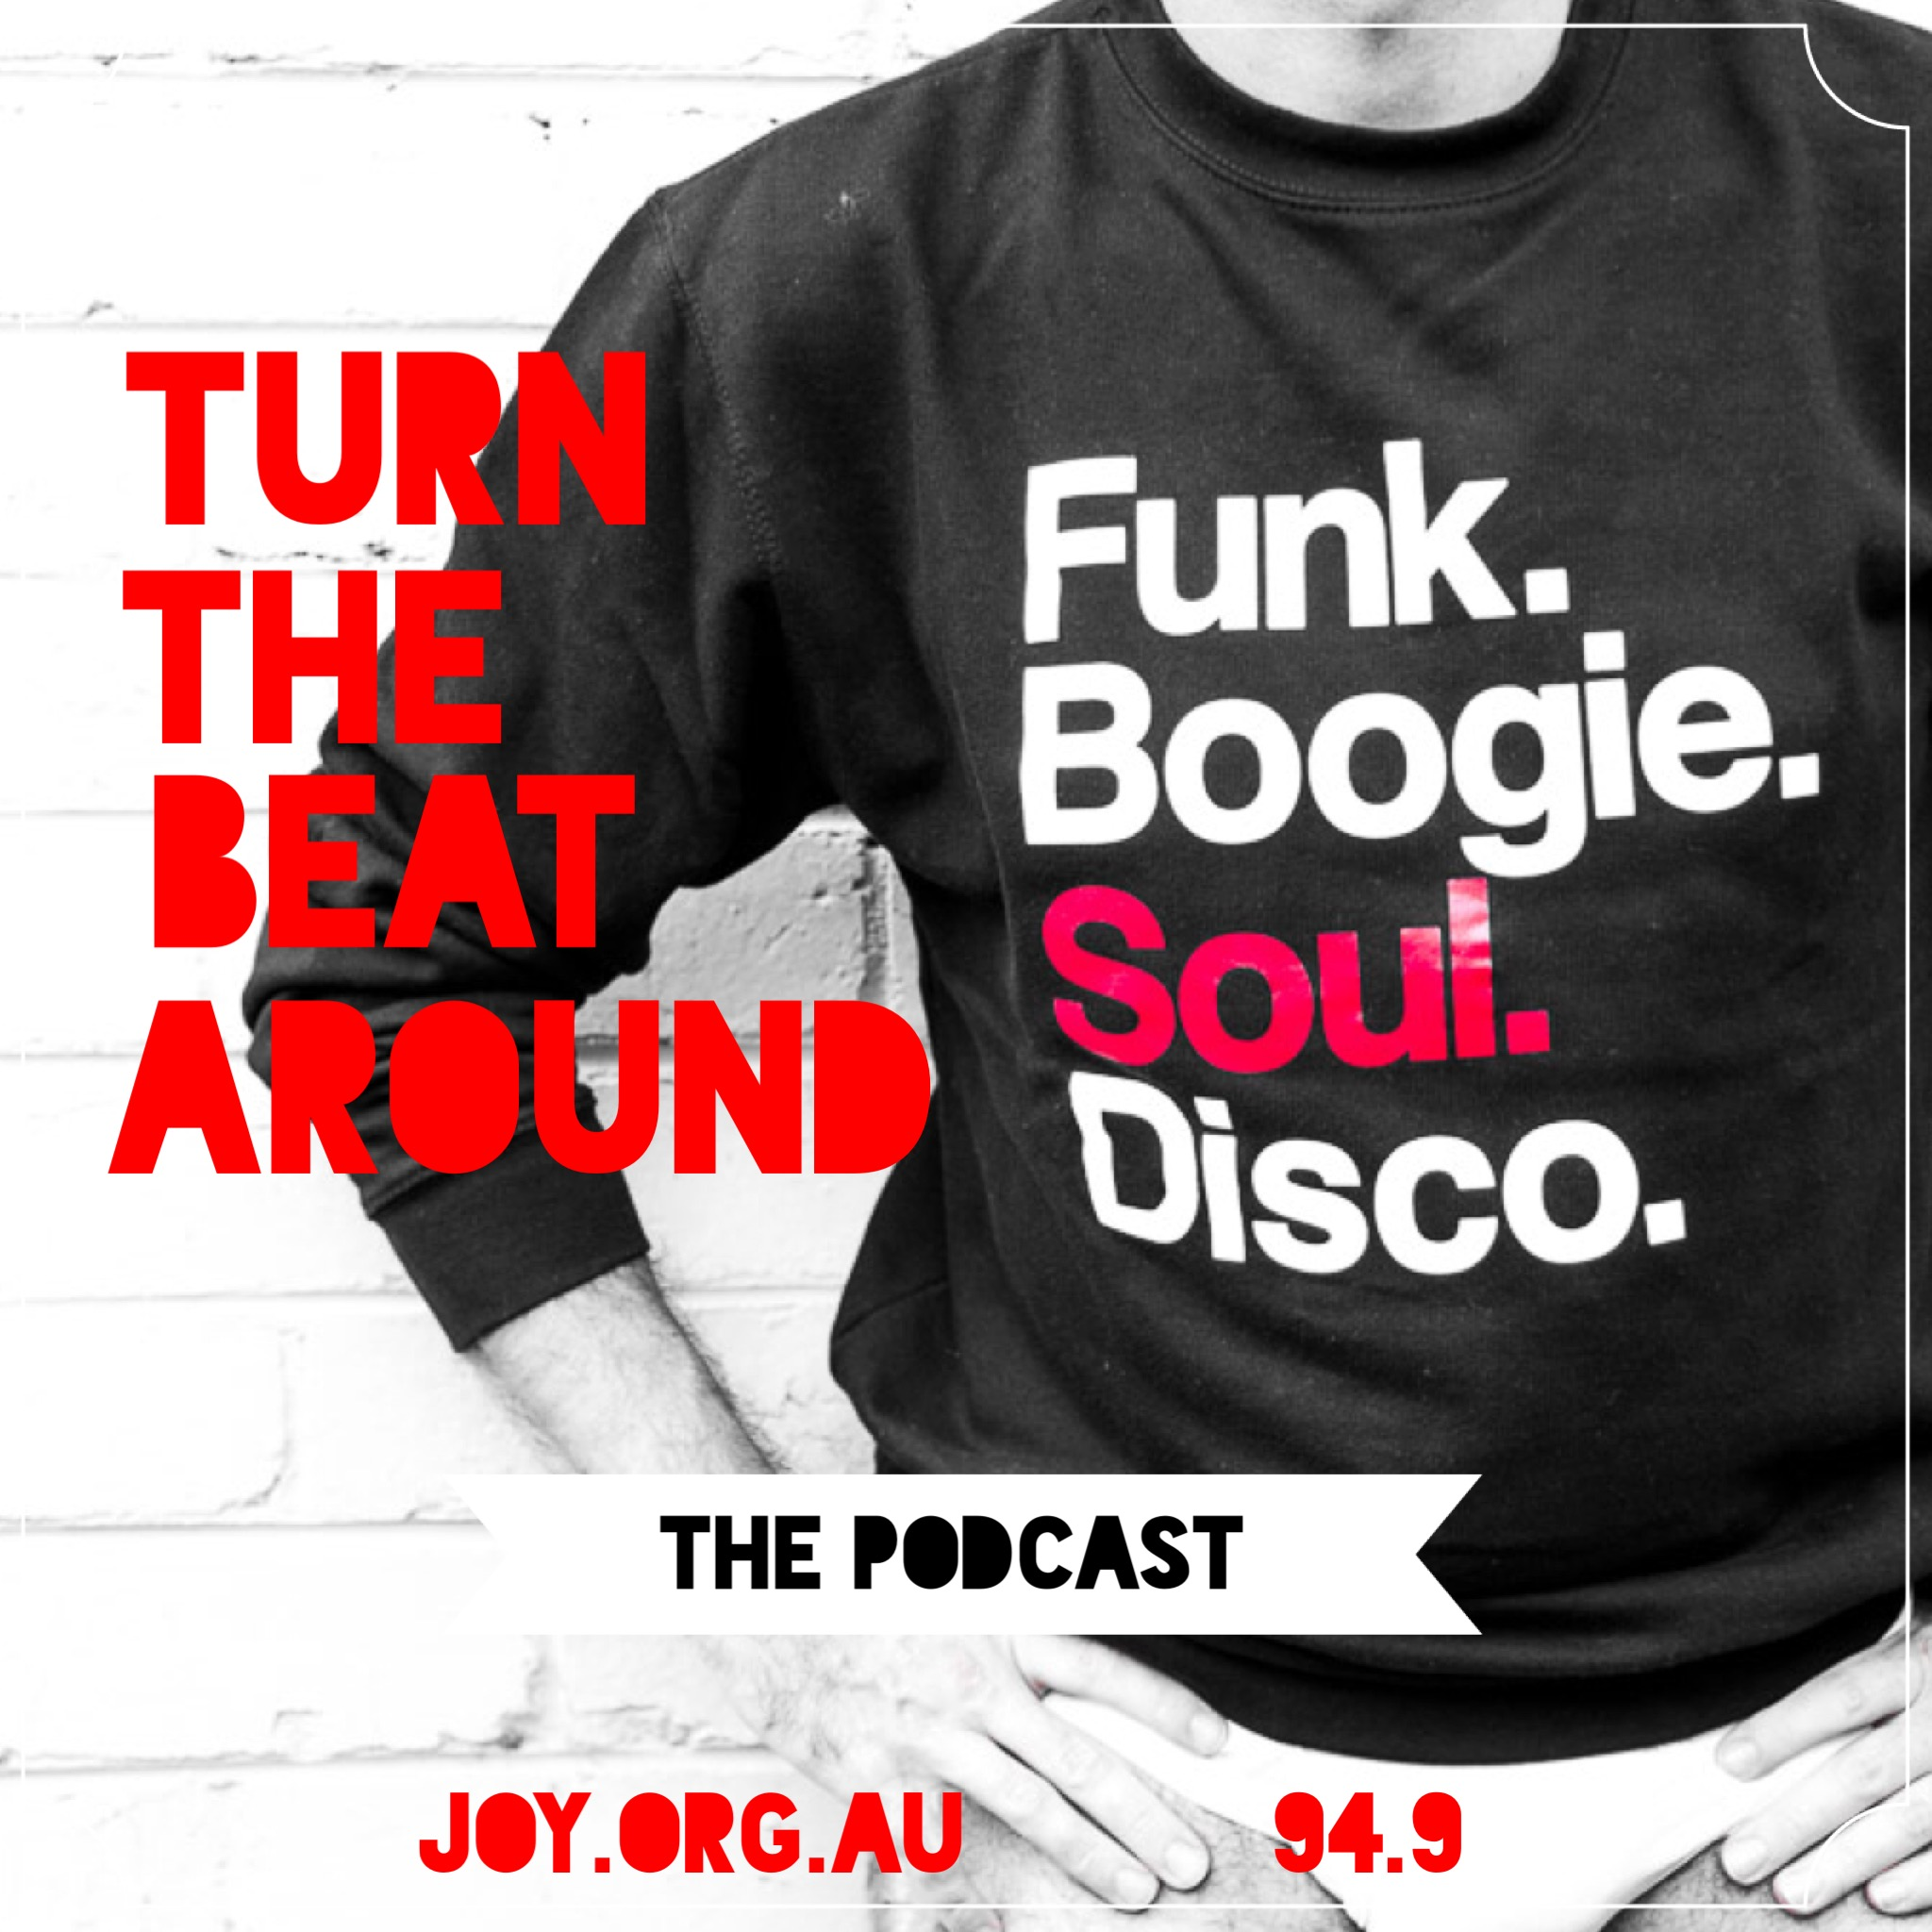 Love Thang - The Podcast Part 2 | Turn the Beat Around